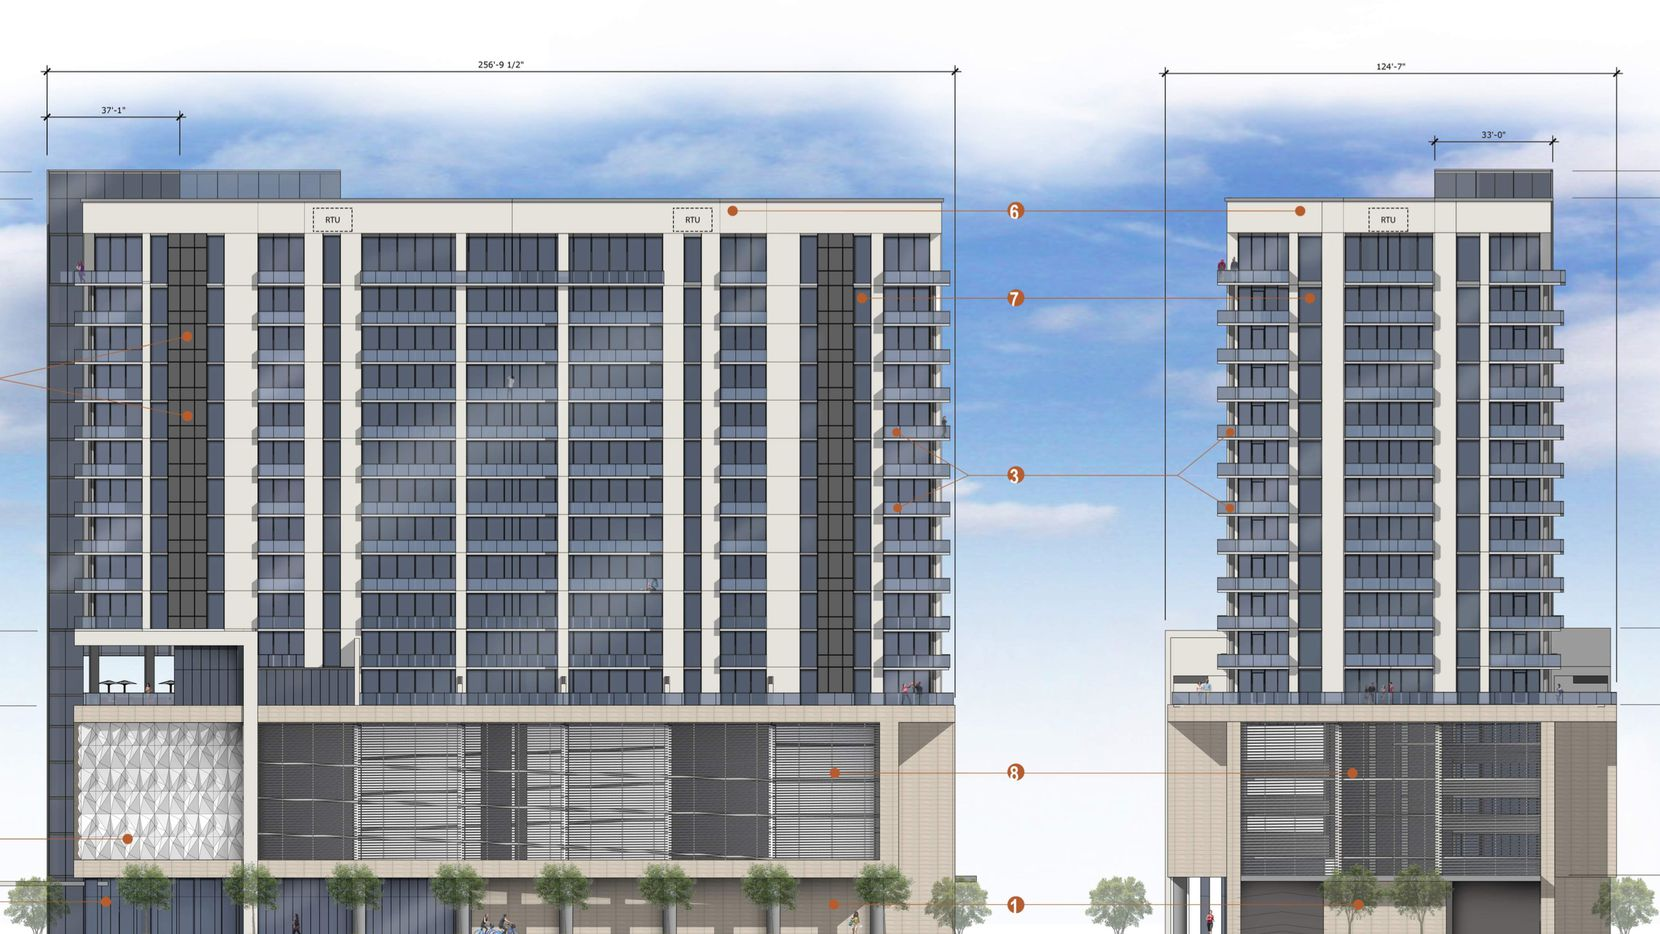 The Star House apartments are being built at the Dallas Cowboys' headquarters and mixed-use project in Frisco.